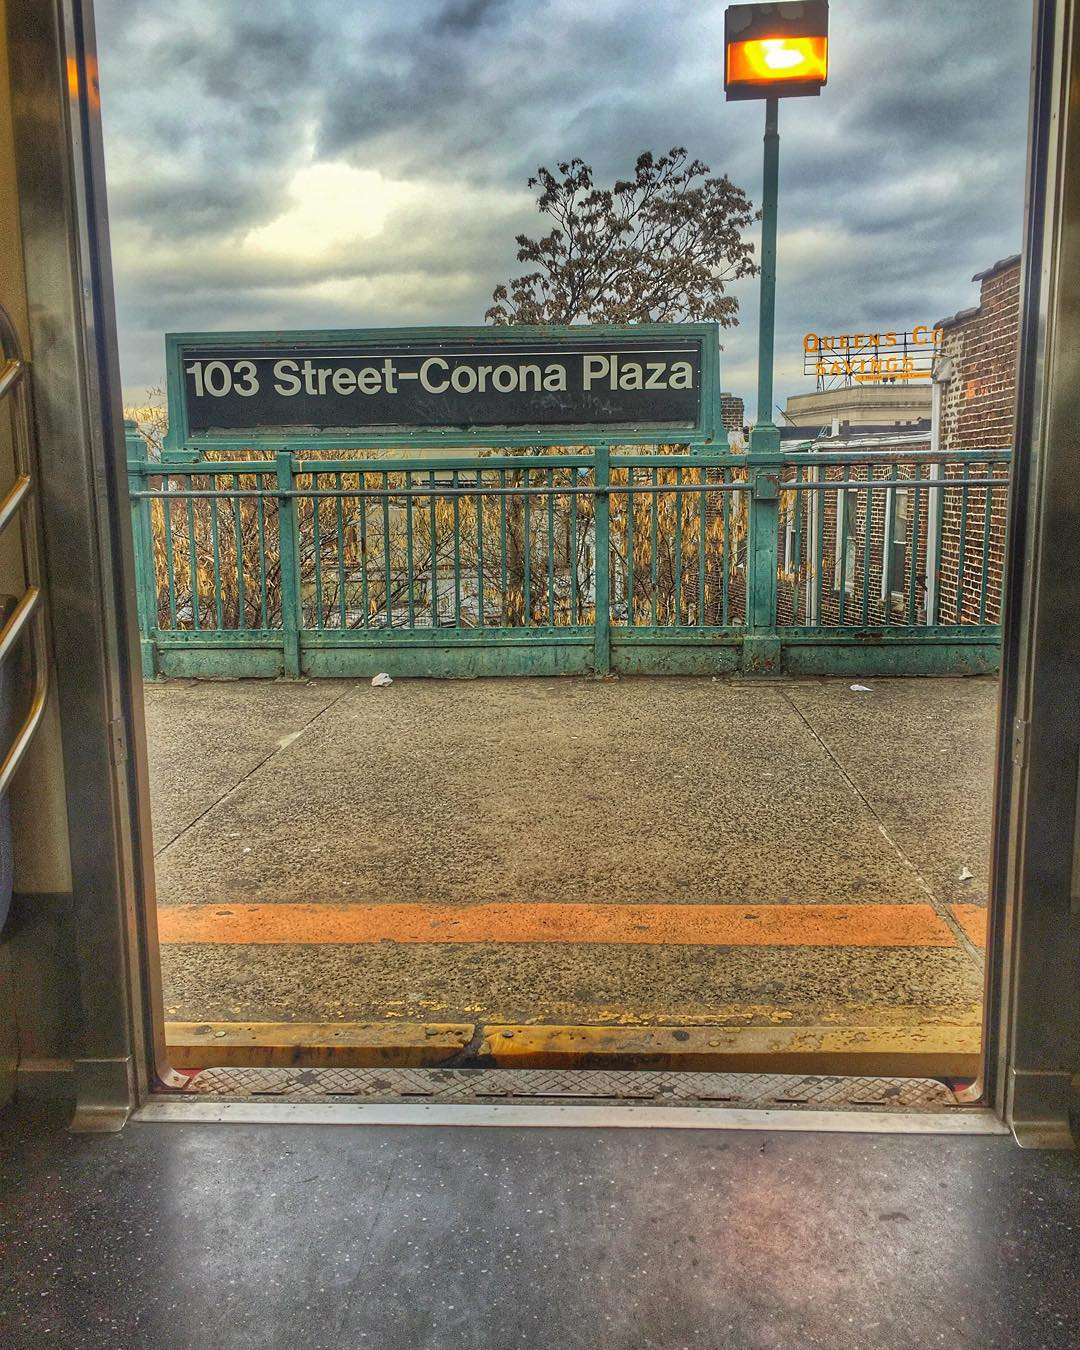 I could totally say something about doors opening on a new year…Happy 2016, Queens!            #corona #coronany #queens #queensnyc #queenscapes #7train #7line #heartofqueens  (at 103rd Street – Corona Plaza)